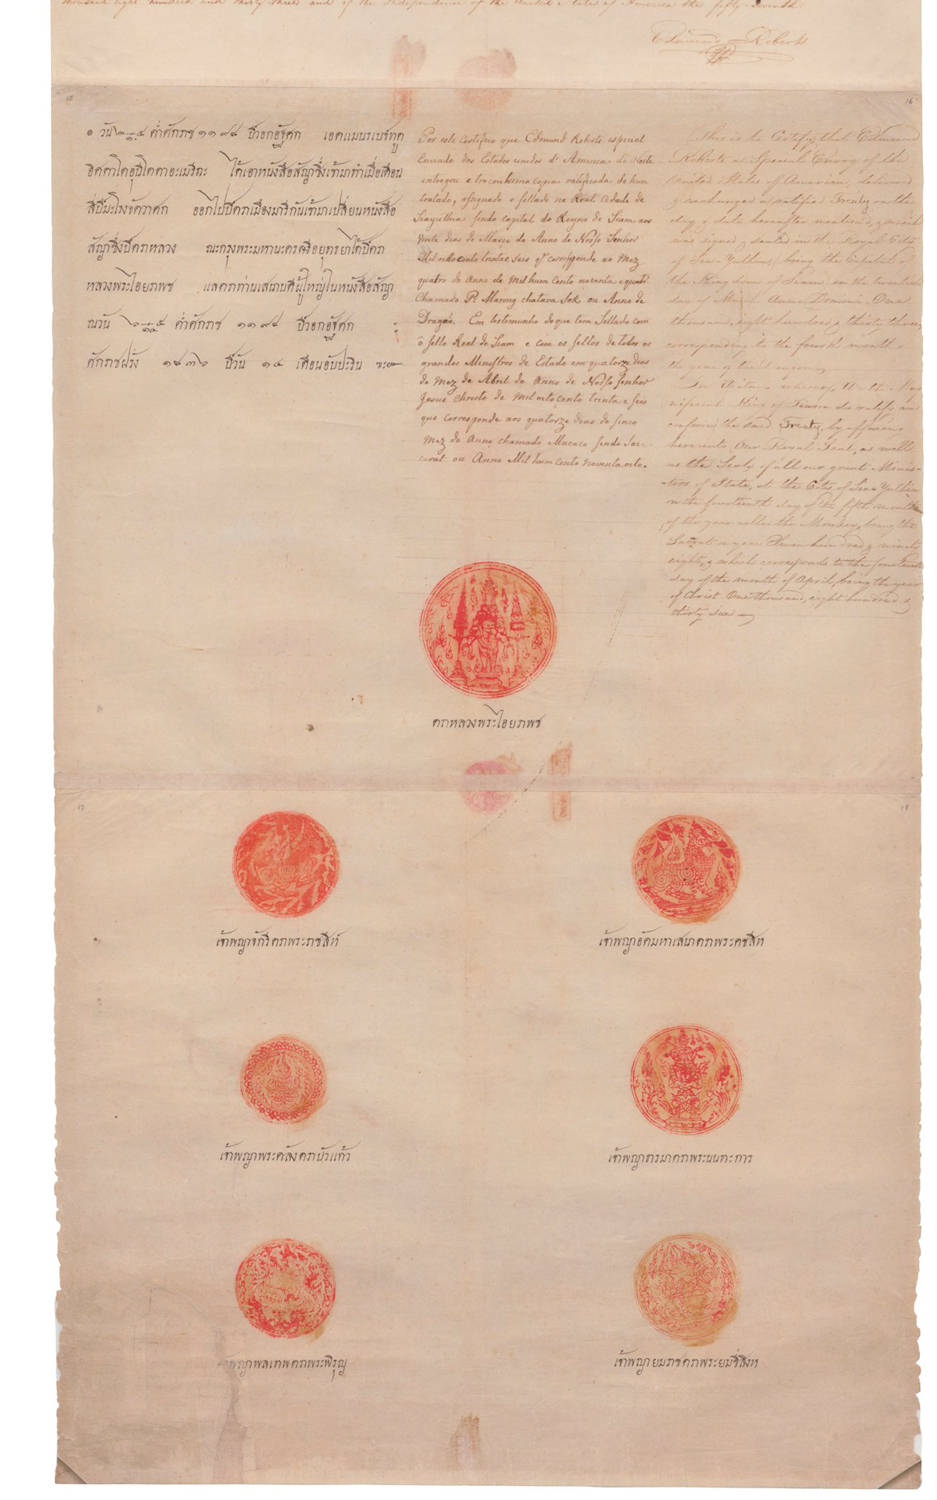 Treaty of Amity and Commerce